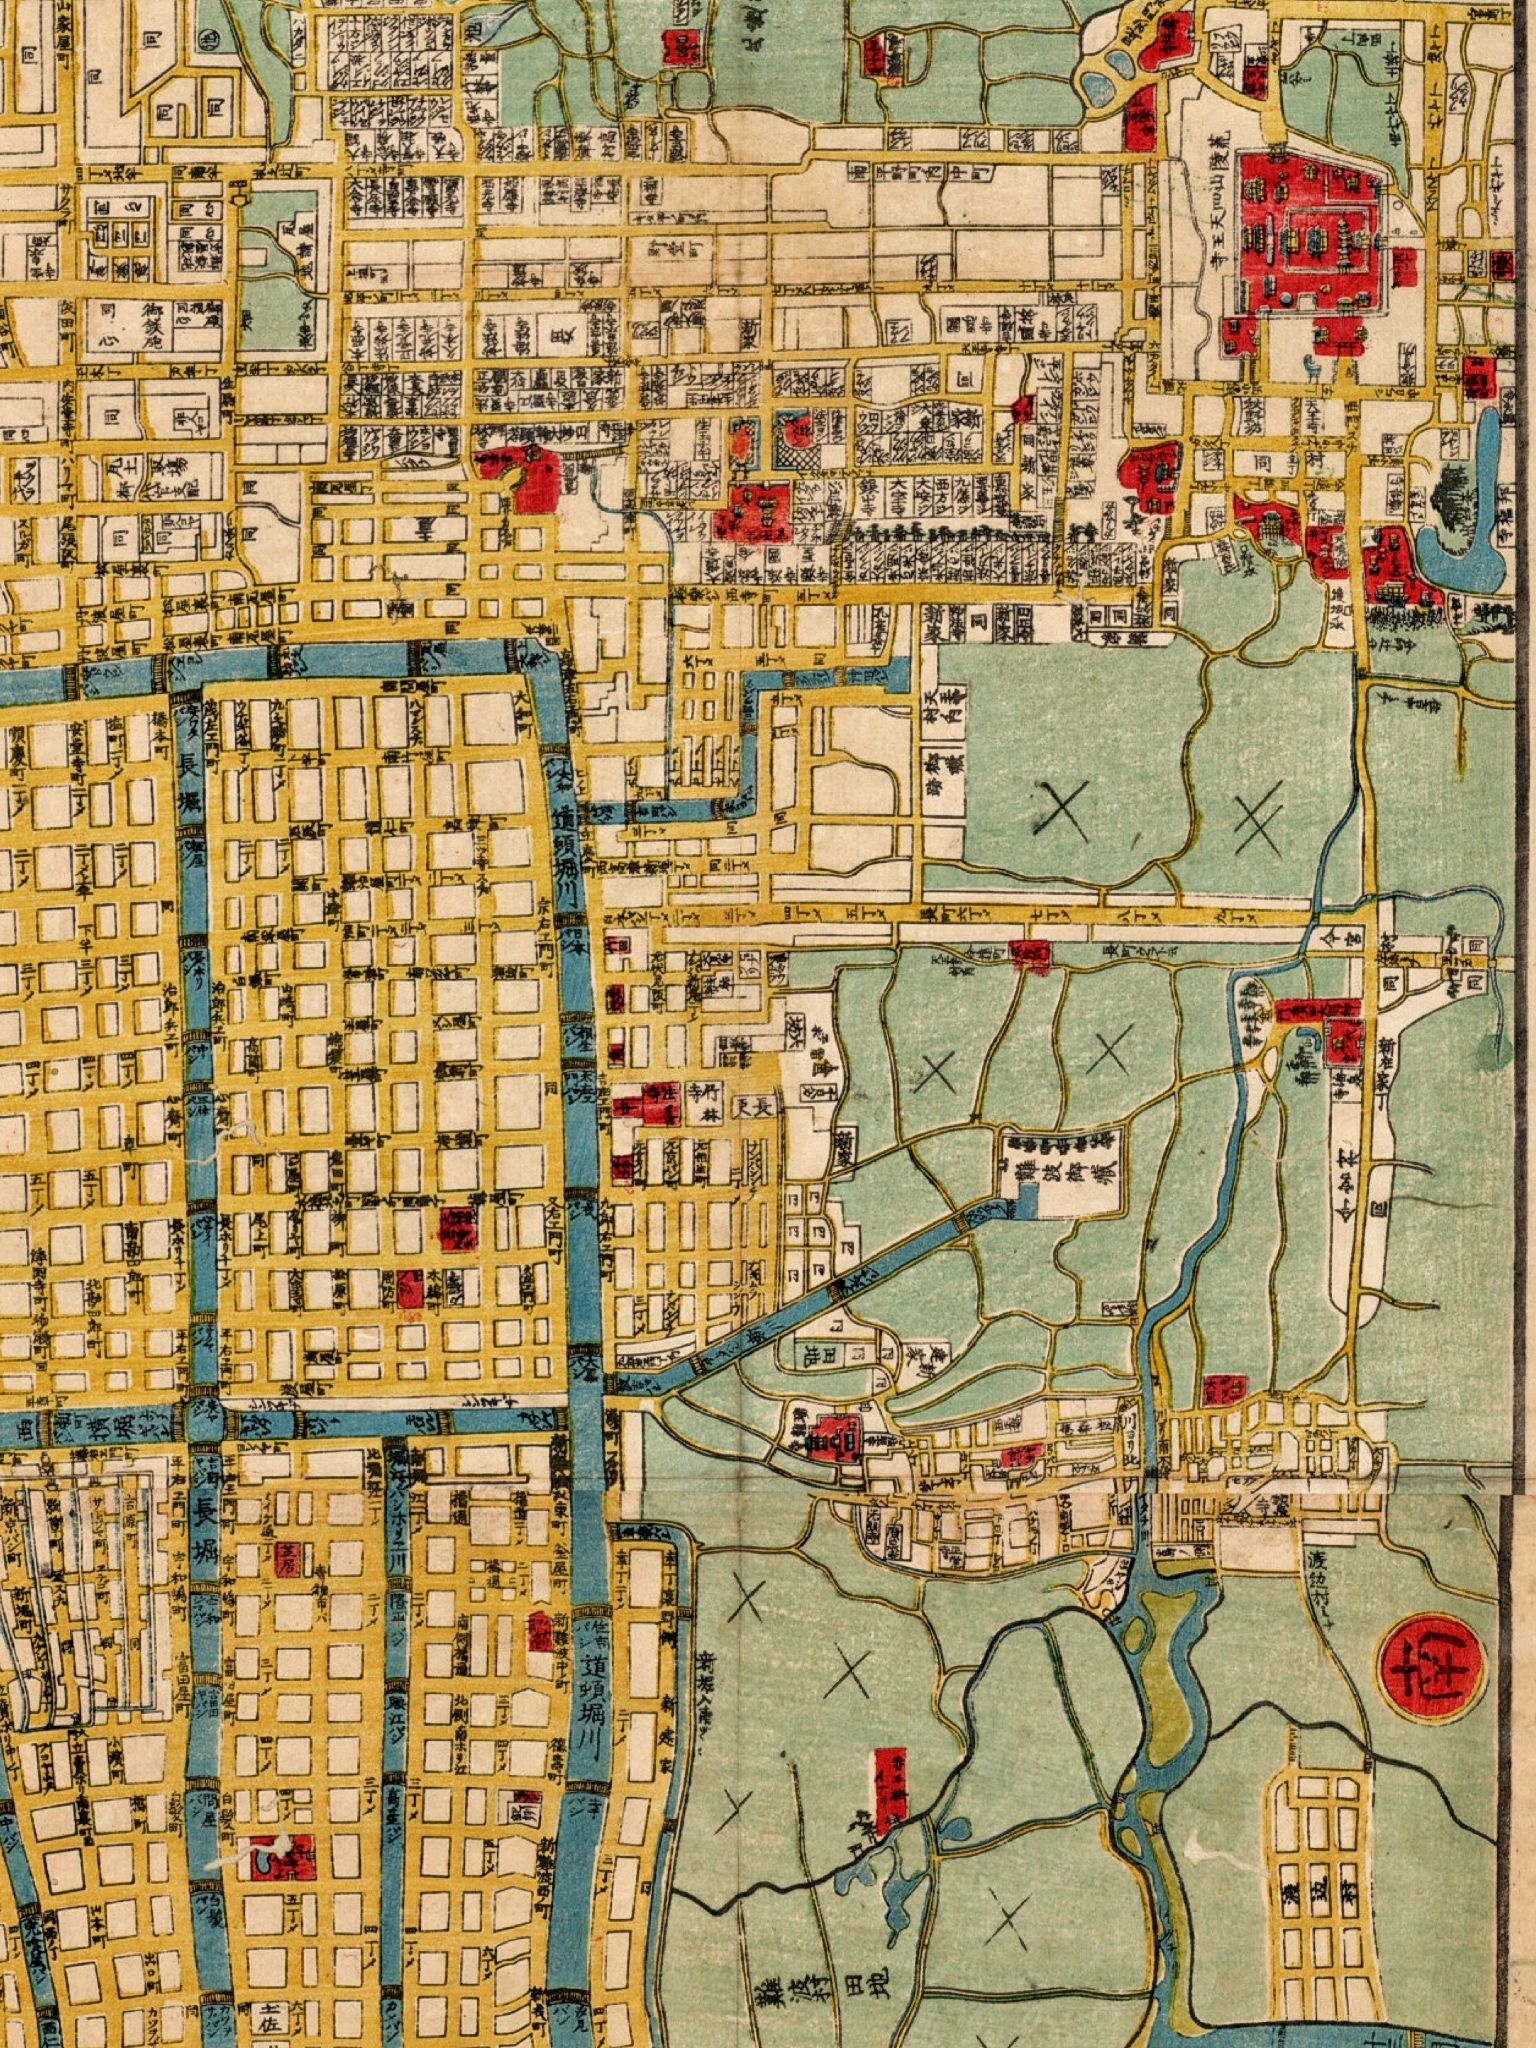 Detail 1863 Japanese map of Osaka National Treasure of Japan